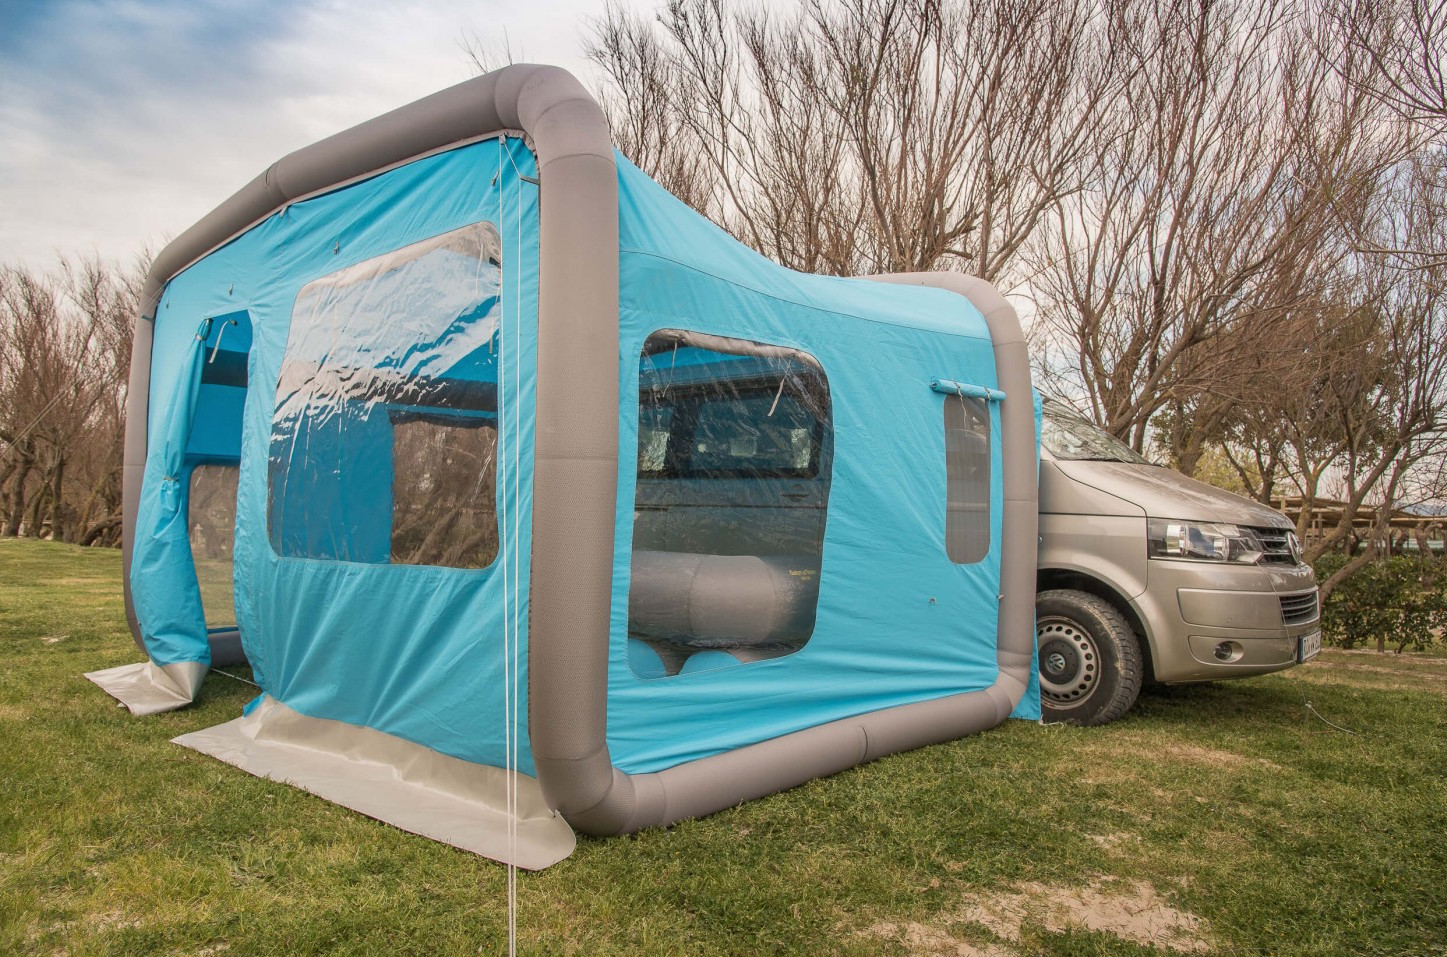 The GT Home Van tent from Gentletent retails for approximately $2100. Courtesy of Gentletent & Inflatable camping tents set up in minutes - Curbed